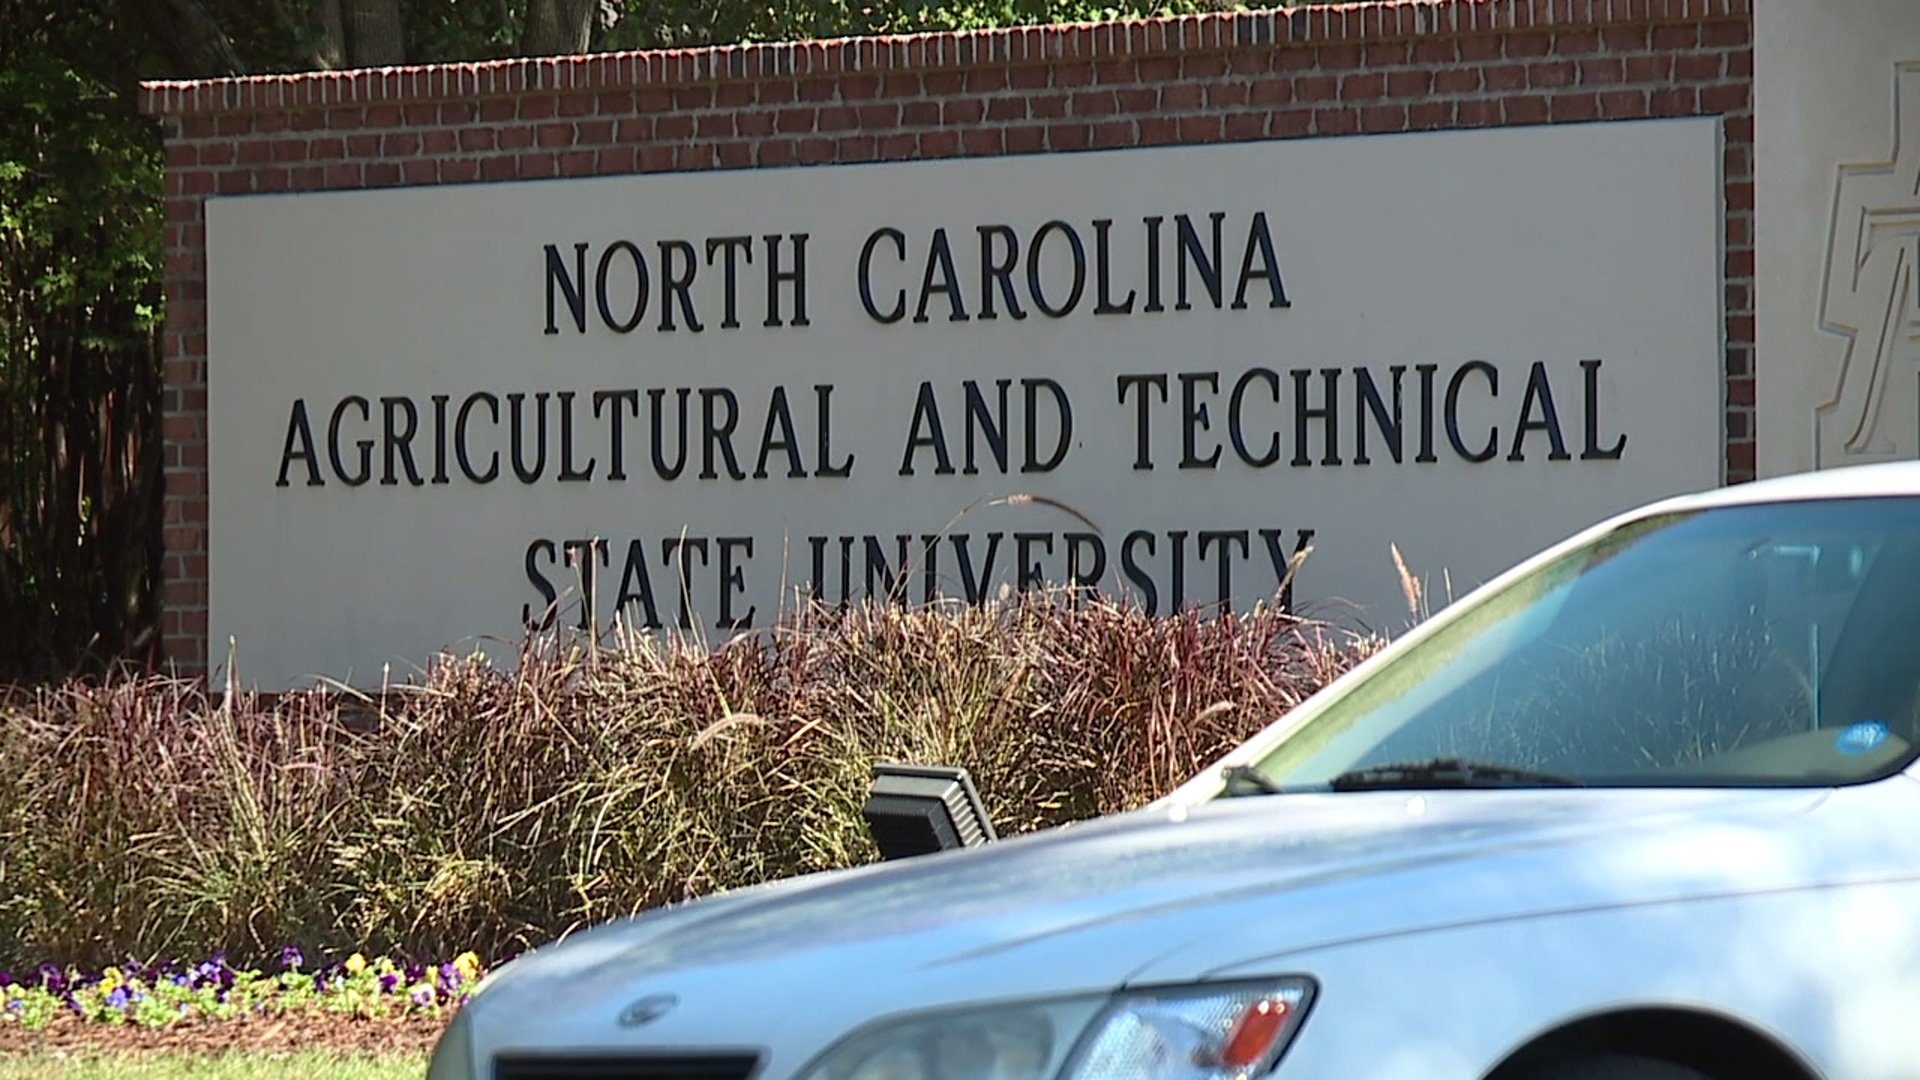 North Carolina Agricultural and Technical State University (WGHP)